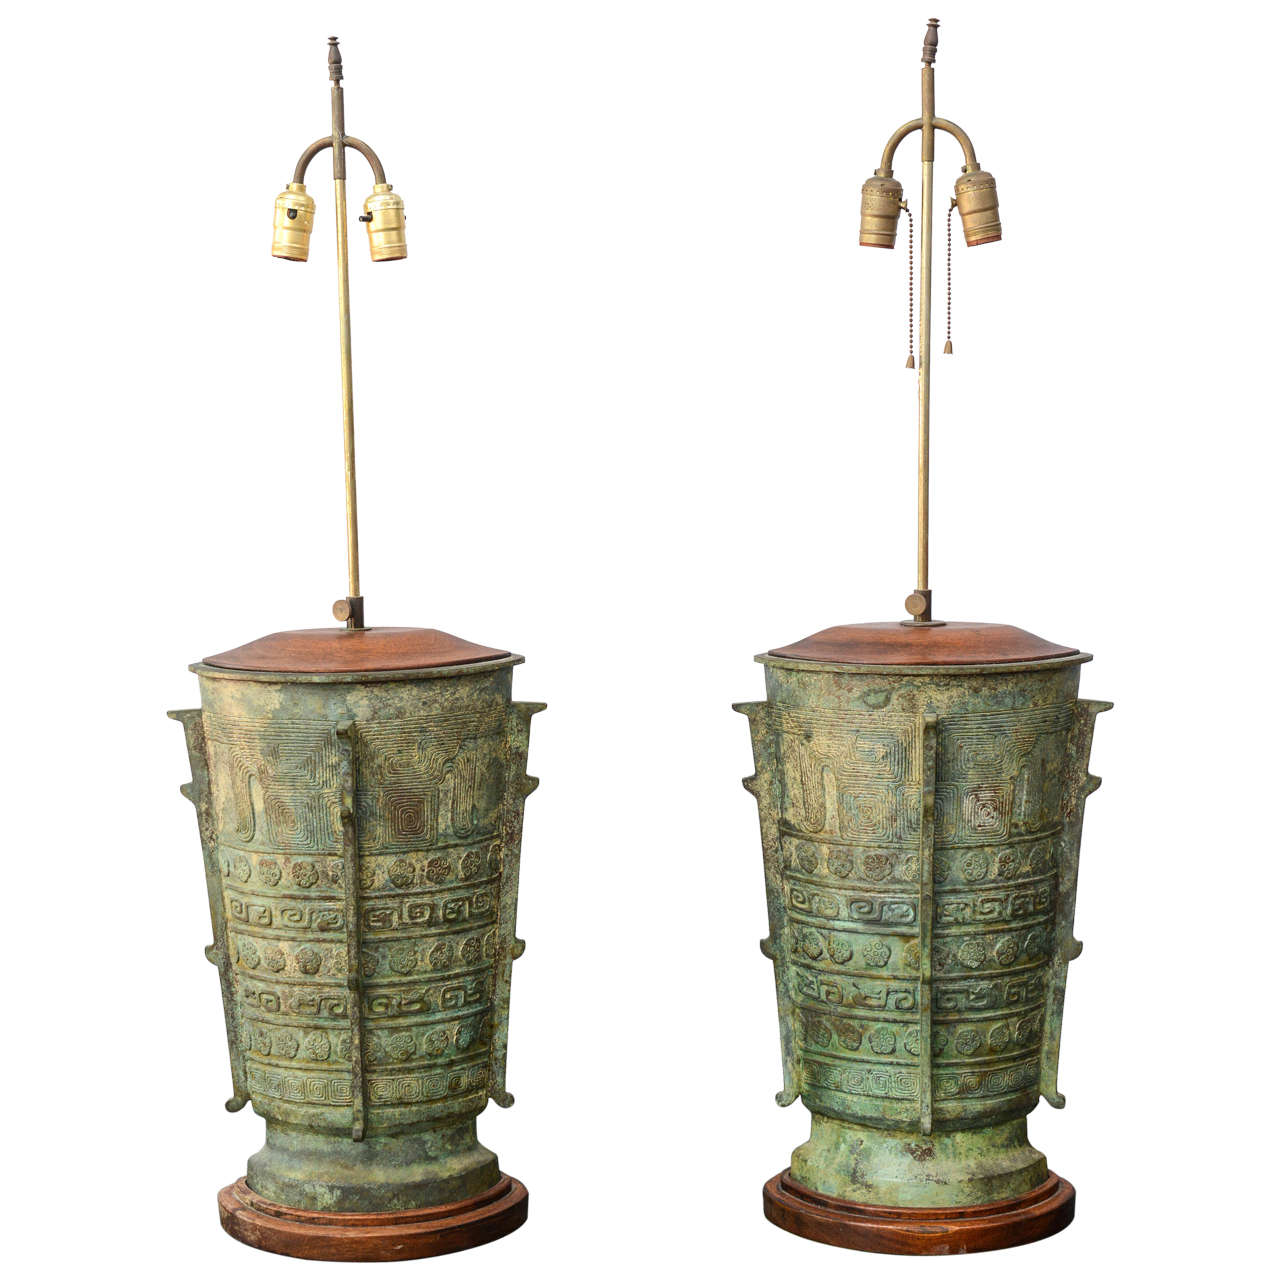 Oversized verdigris bronze asian table lamps at 1stdibs oversized verdigris bronze asian table lamps 1 mozeypictures Choice Image